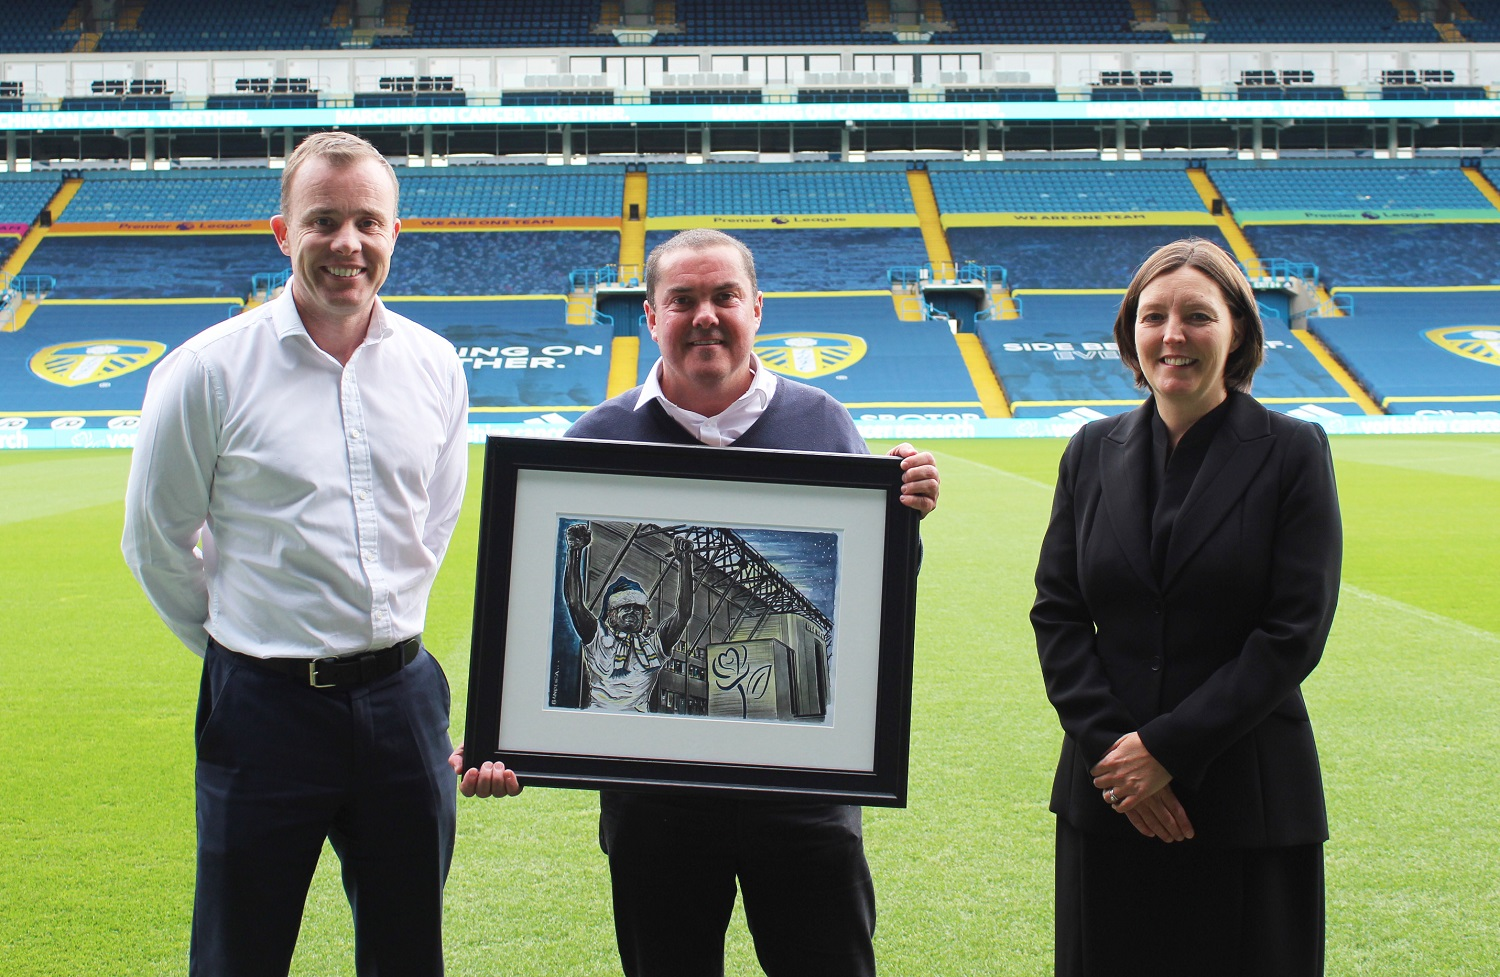 Illustrator Graeme Bandeira with Yorkshire Cancer Research Chief Executive, Kathryn Scott, and Leeds United Chief Executive, Angus Kinnear